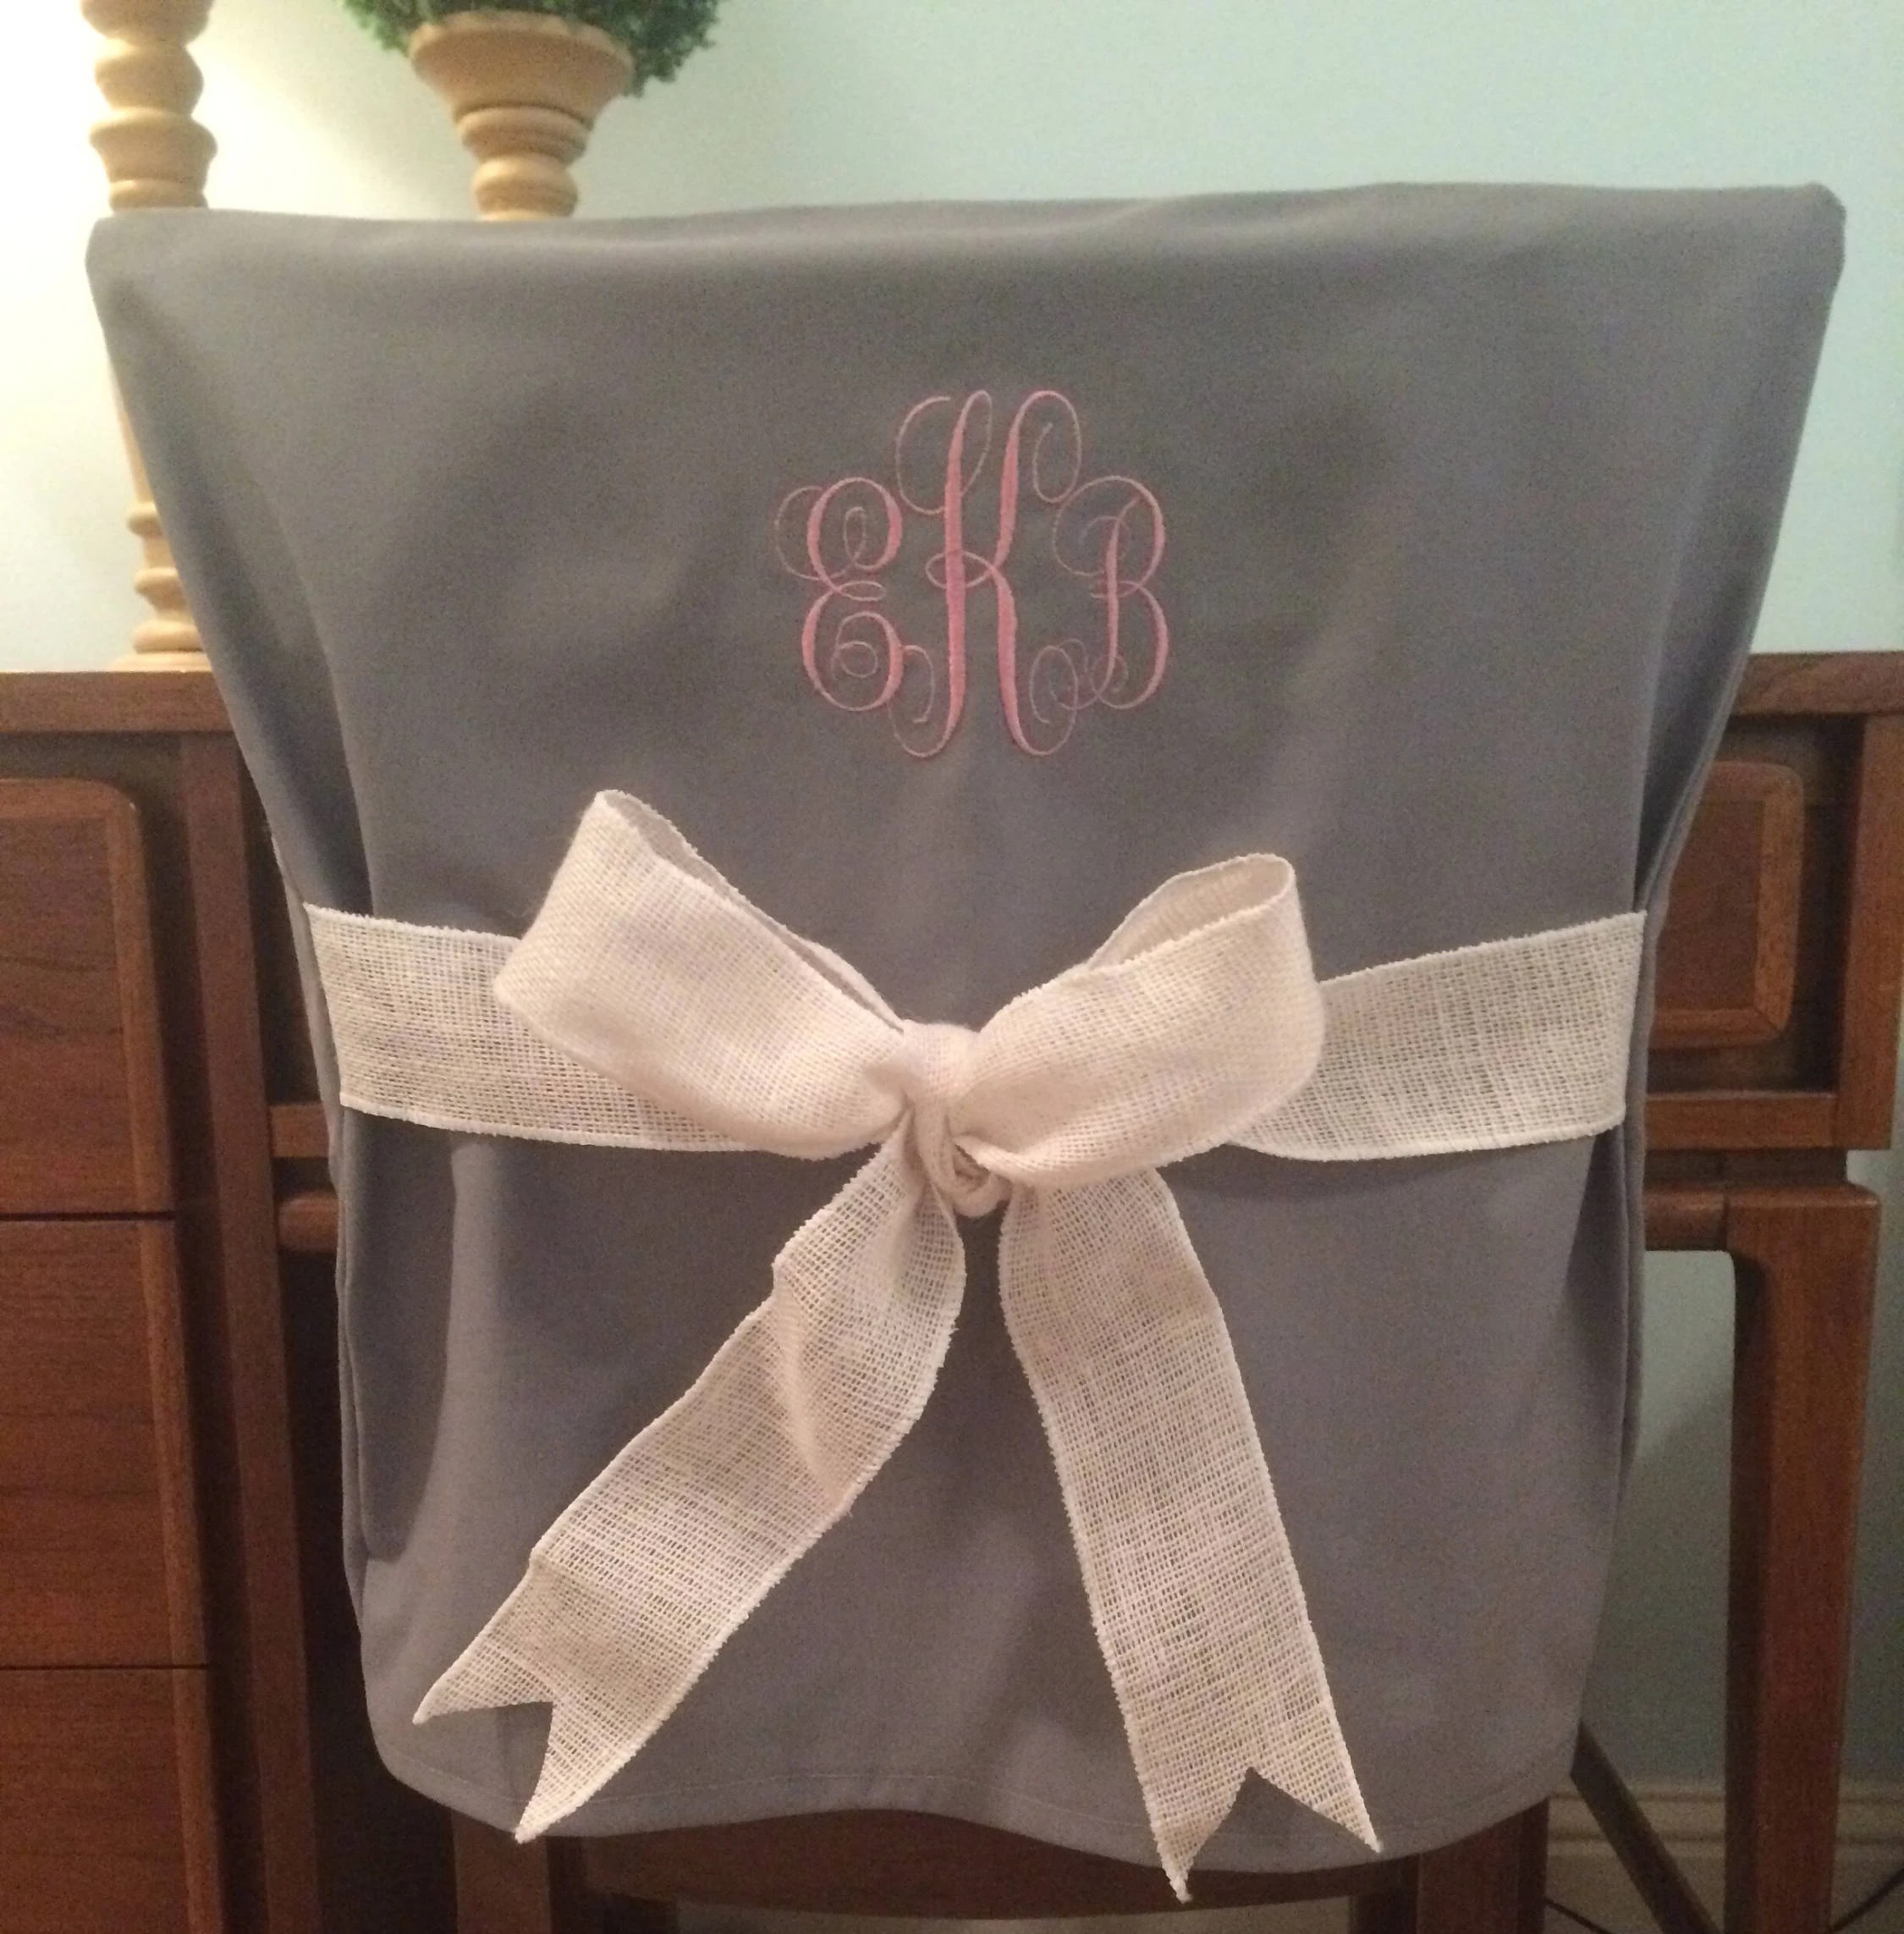 custom dining chair covers australia indoor rocking cushions sets pads etsy gray monogram dorm back cover personalized office slip one size fits most